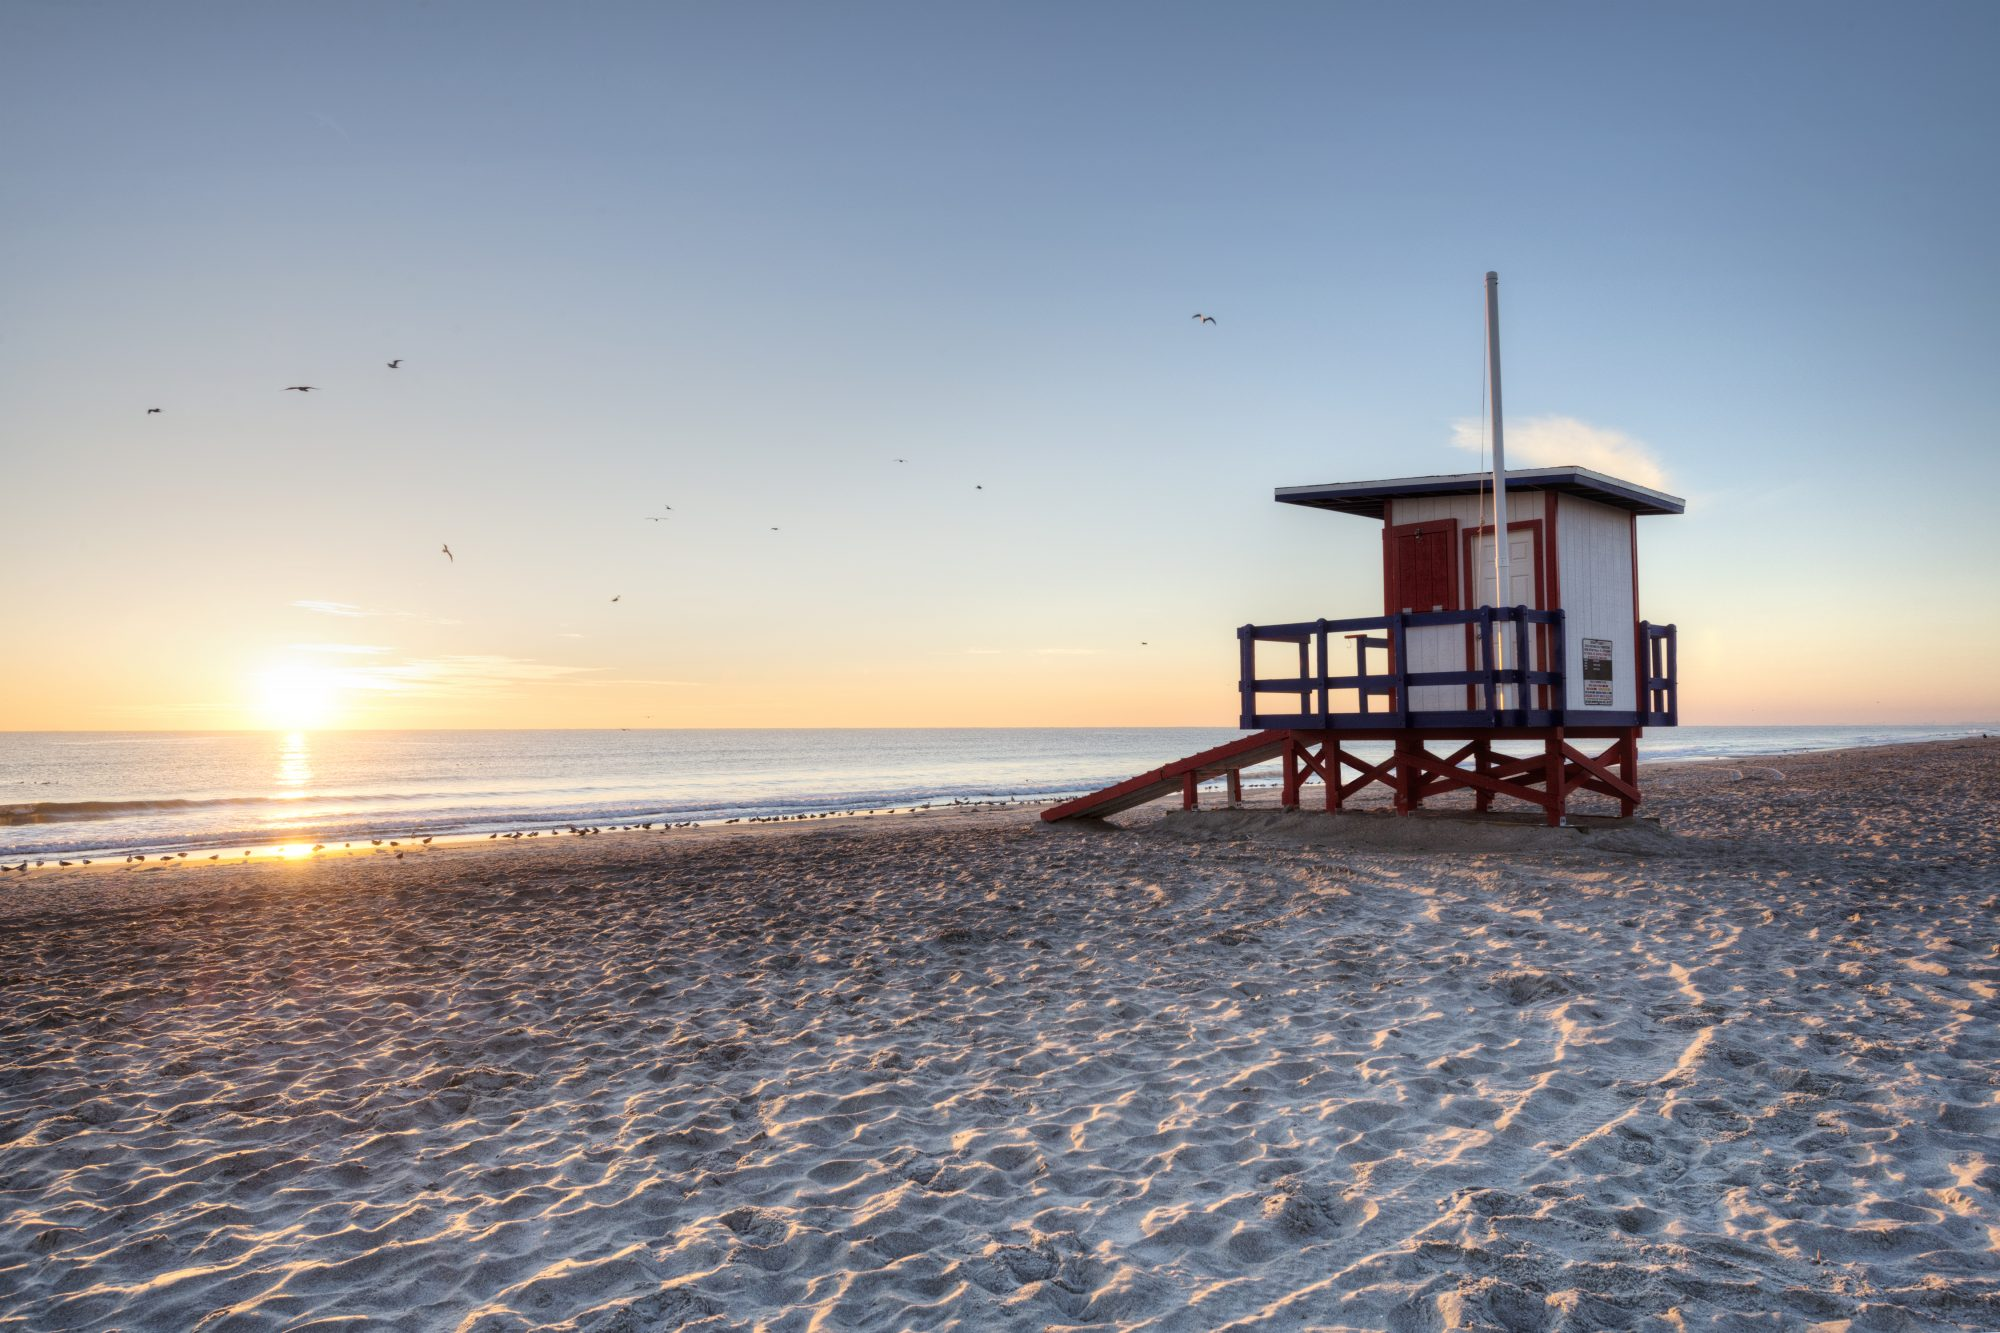 If you have $375,000…head to Cocoa Beach, Florida or Seaside, OregonFrom coast to coast, there are always opportunities to cash in on a vacation rental. And if you have just shy of $400k in the bank, your best bets are in the sleepy surf towns of Cocoa Beach and Seaside. Both cities boast median sales prices hovering just under $375k, and nearly identical capitalization rates of around 5 percent. The only question is, do you prefer your beach towns bathed in year-round sunshine or served with a side of rugged beauty (and adorable sea otters)?